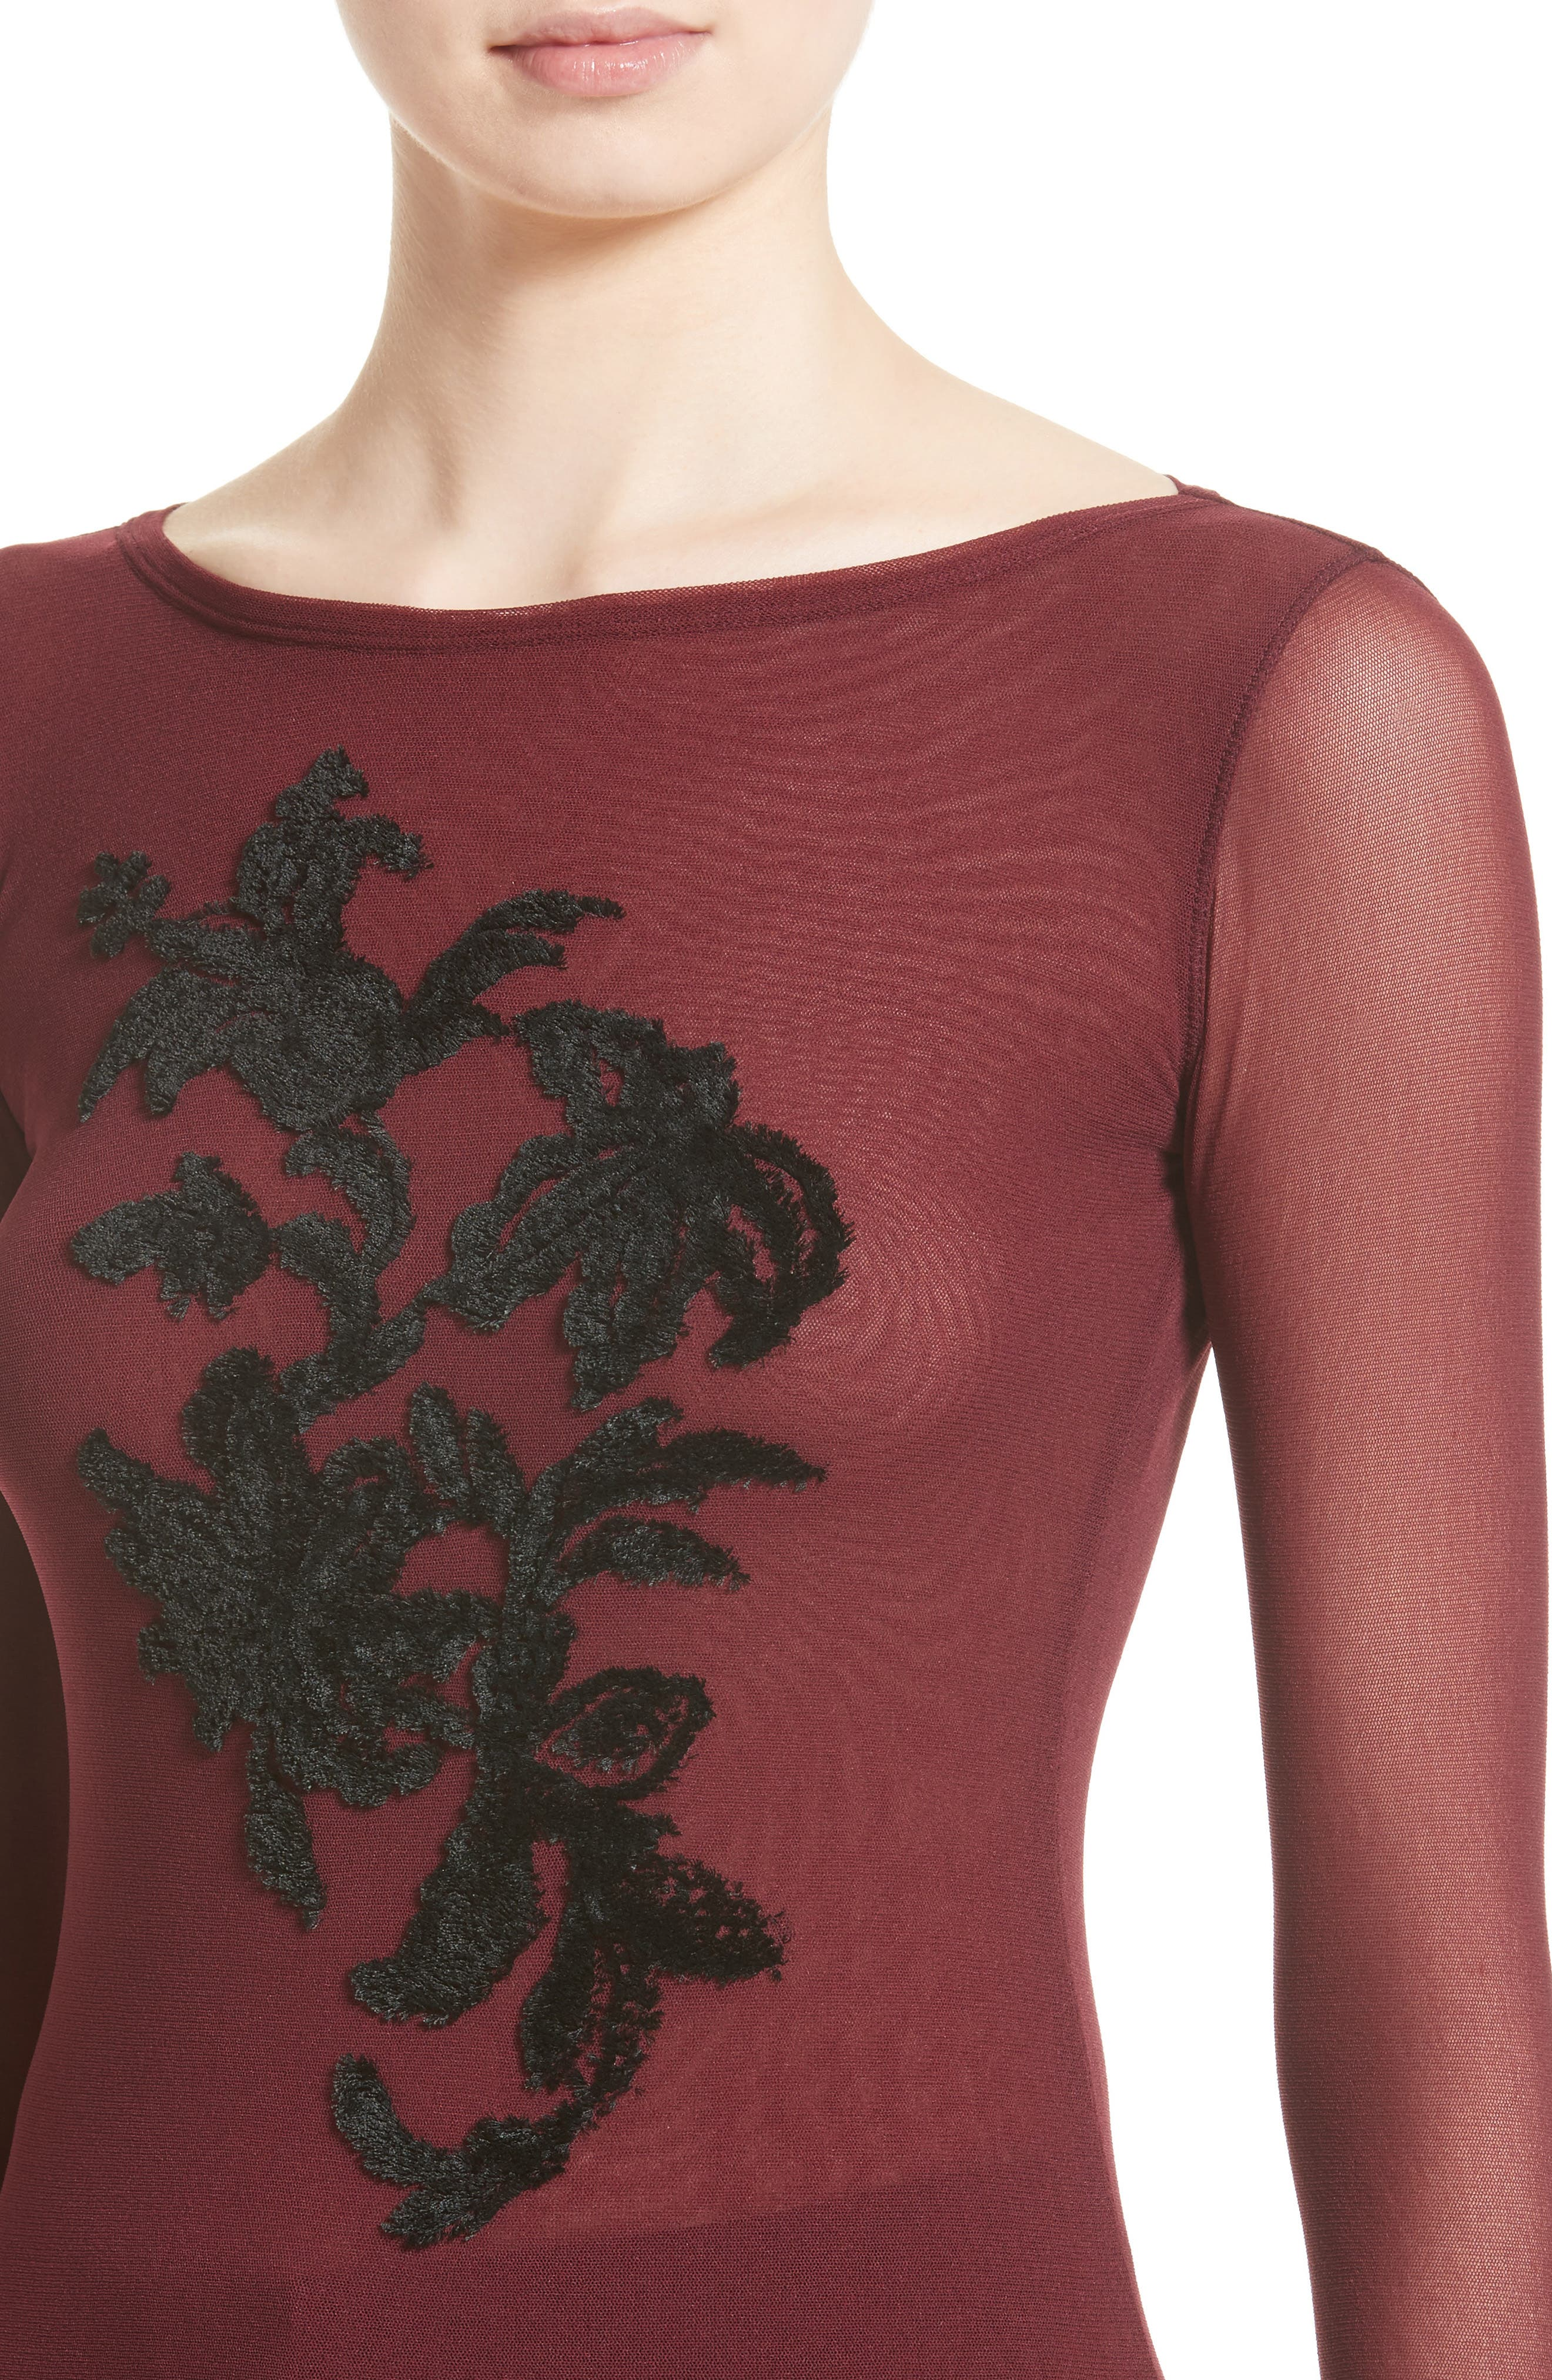 Embroidered Tulle Top,                             Alternate thumbnail 4, color,                             930